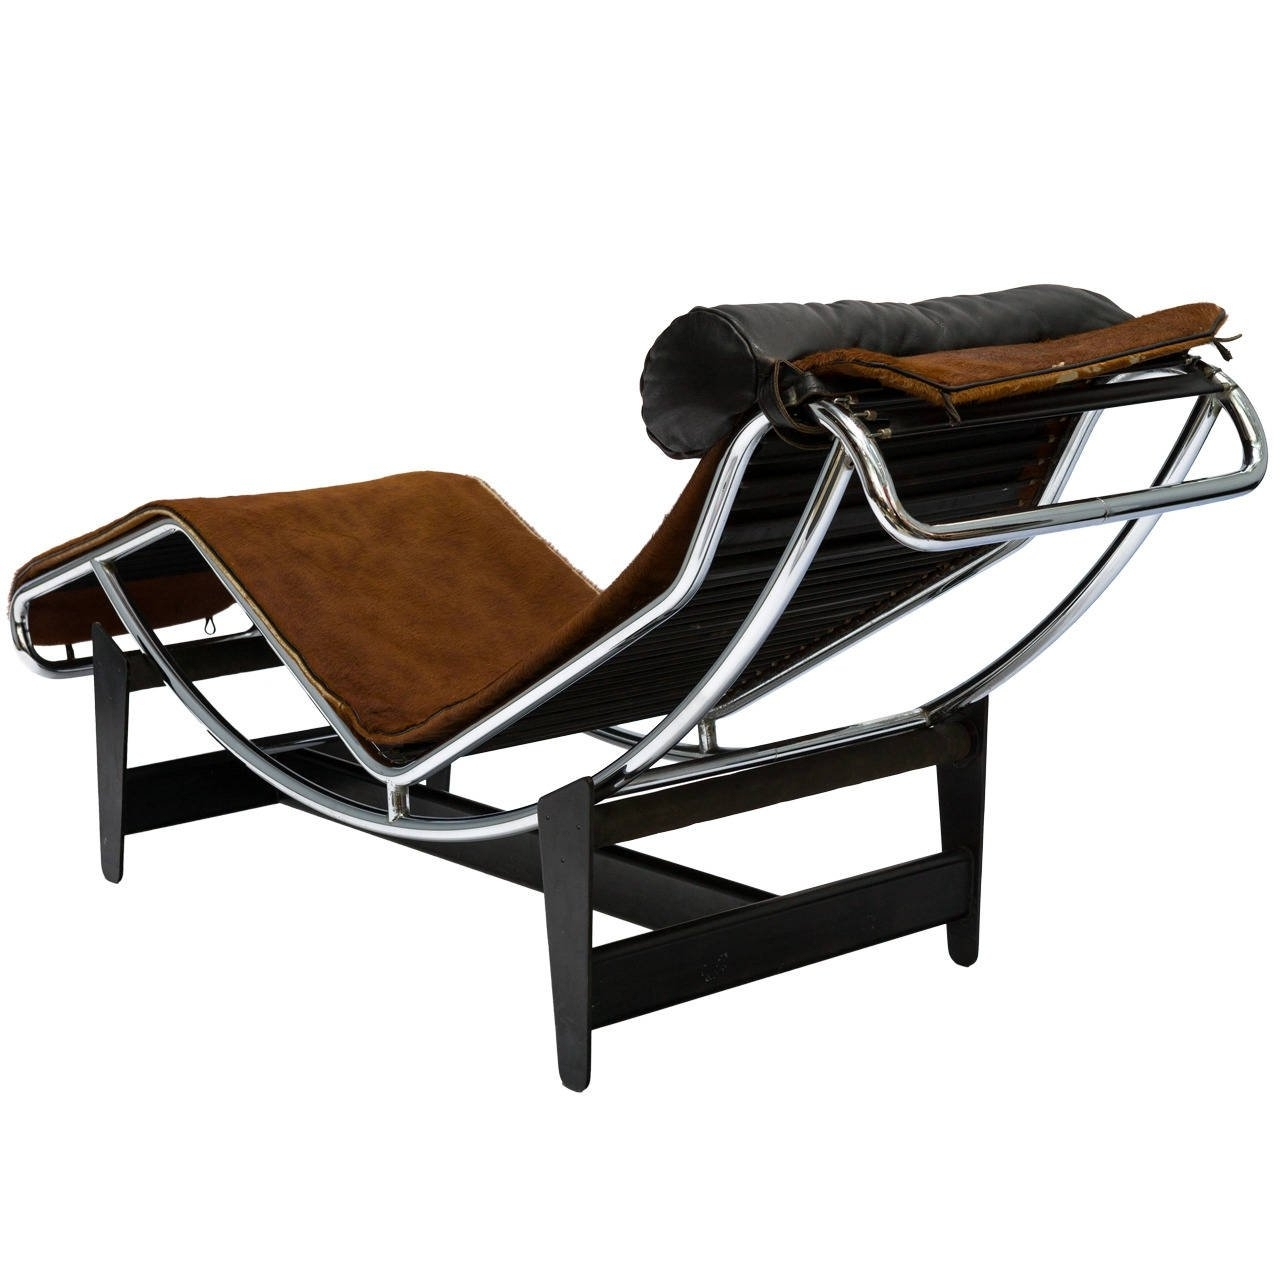 Most Recent Le Corbusier Lc4 Chaise Lounge Chair In Cowhide For Sale At 1Stdibs With Brown Chaise Lounge Chair By Le Corbusier (View 3 of 15)